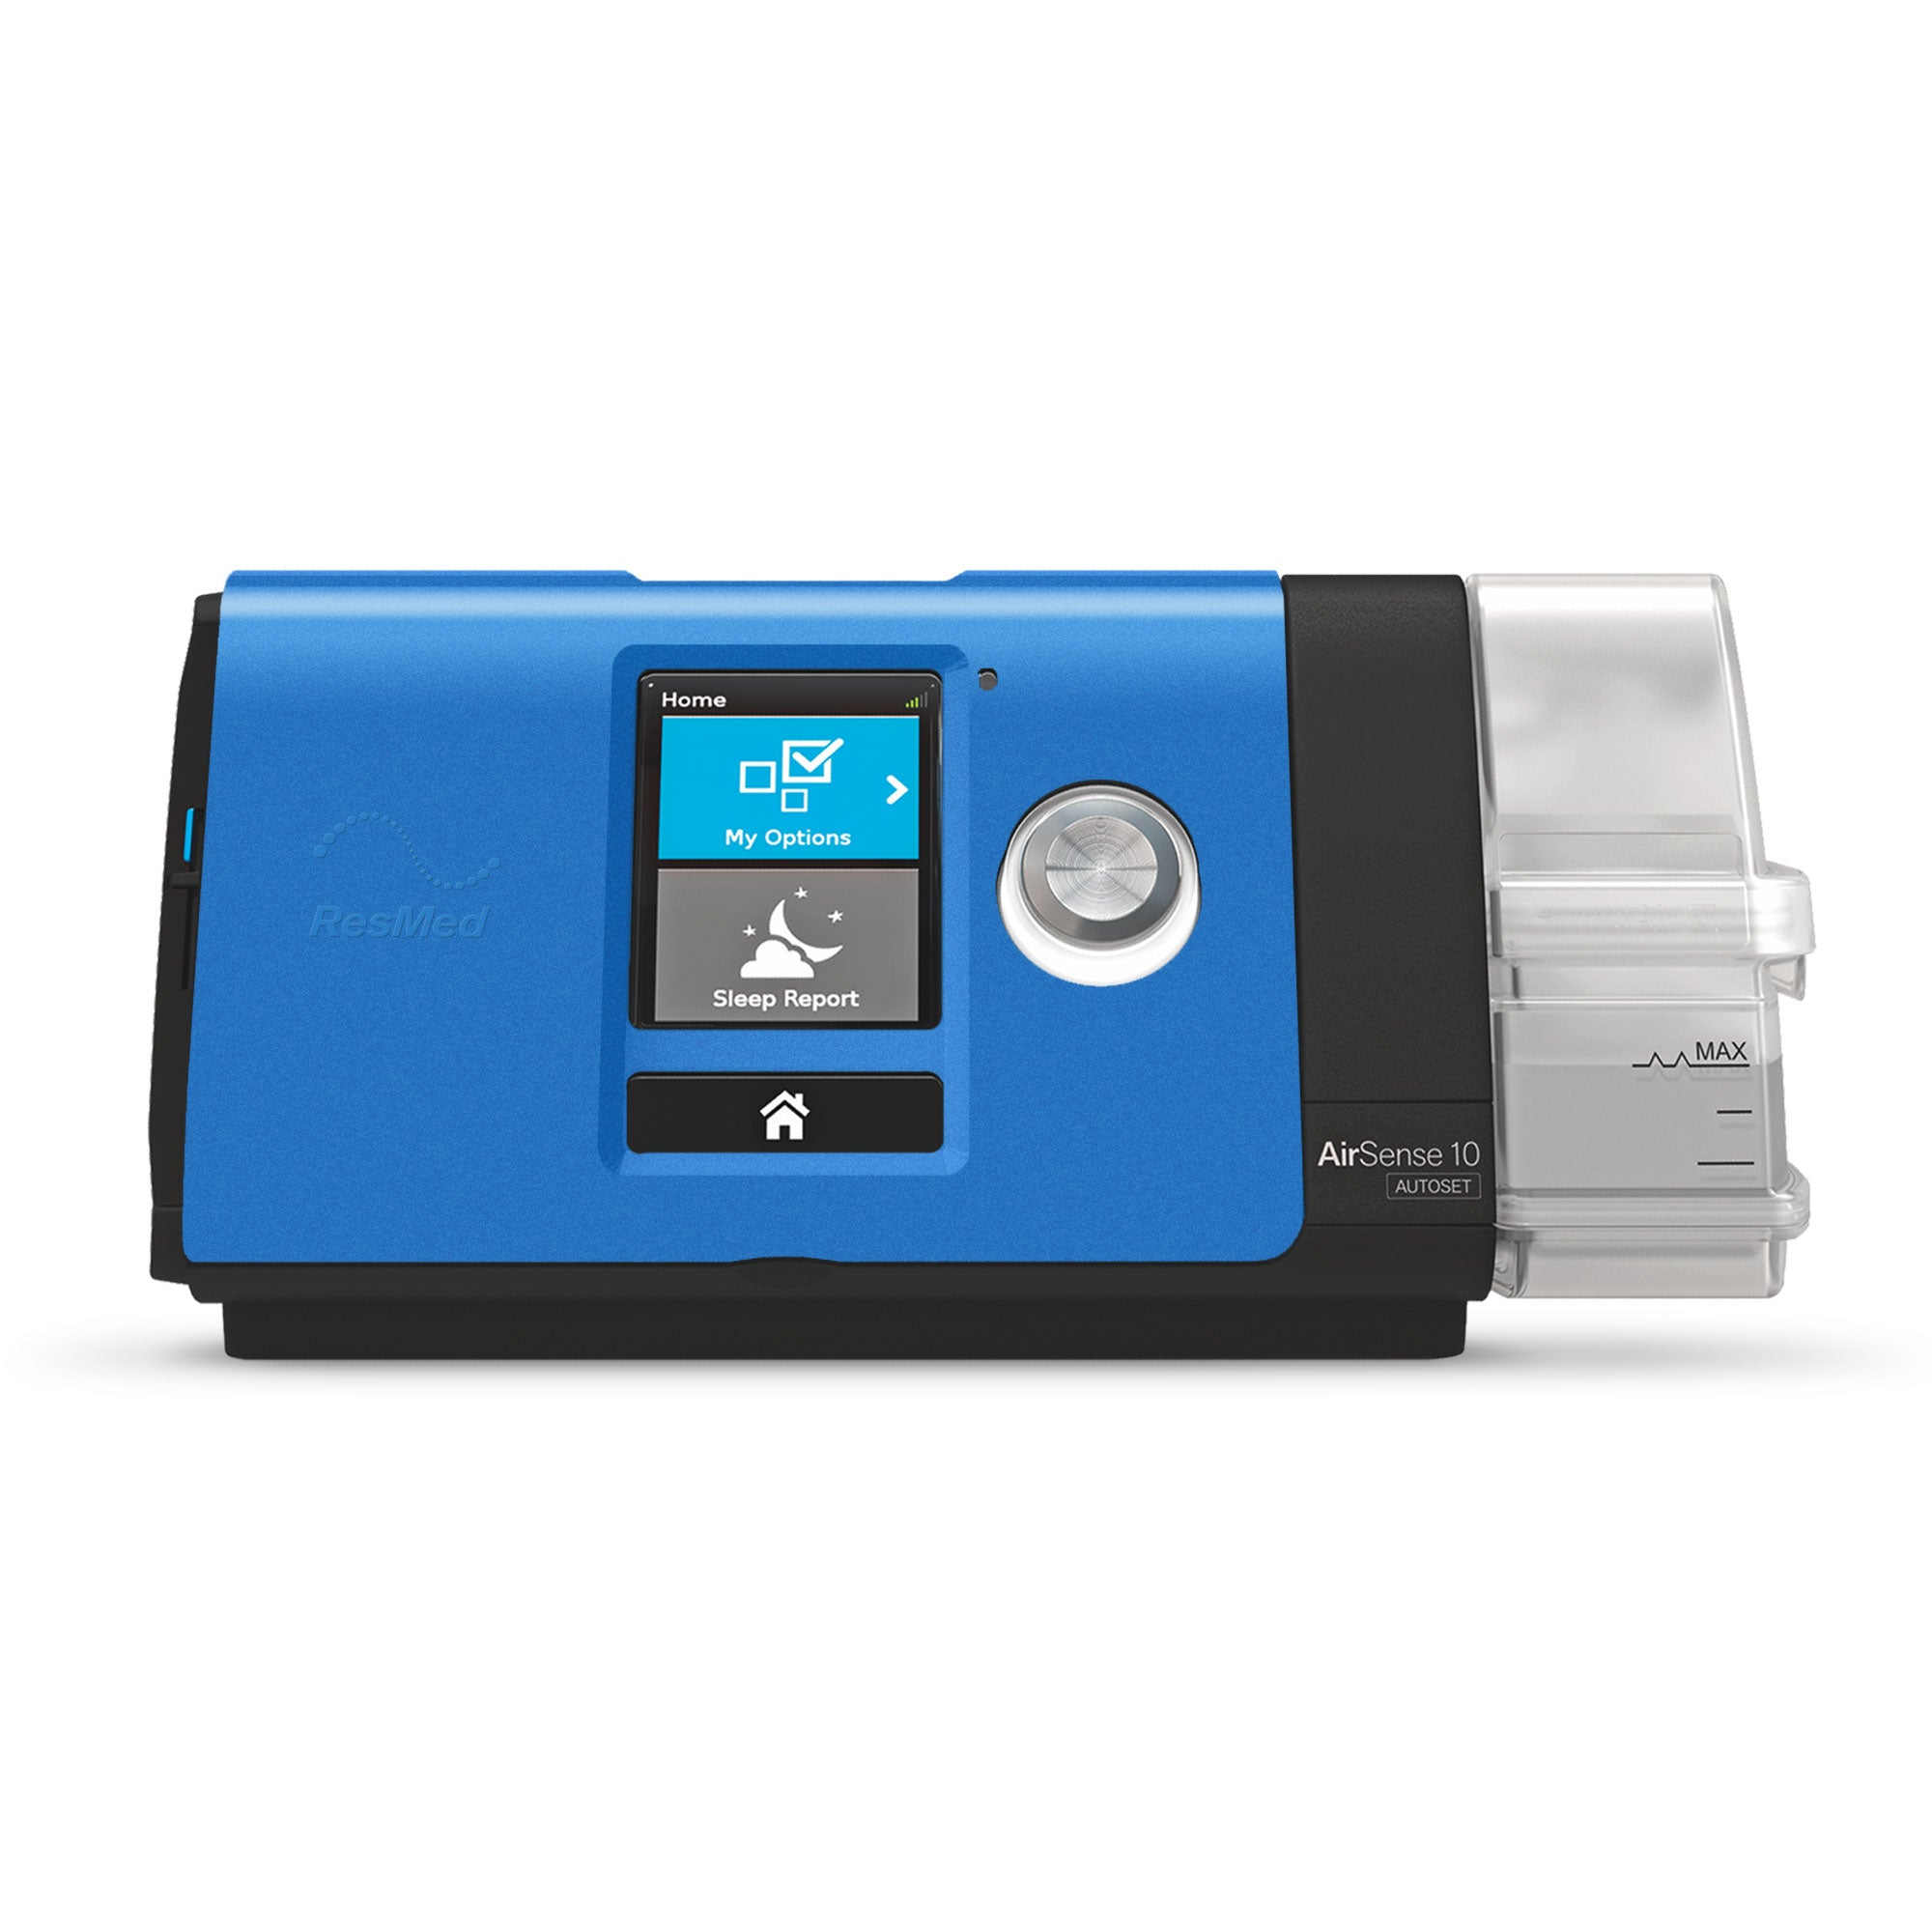 ResMed AirSense 10 with Lofta blue faceplate.